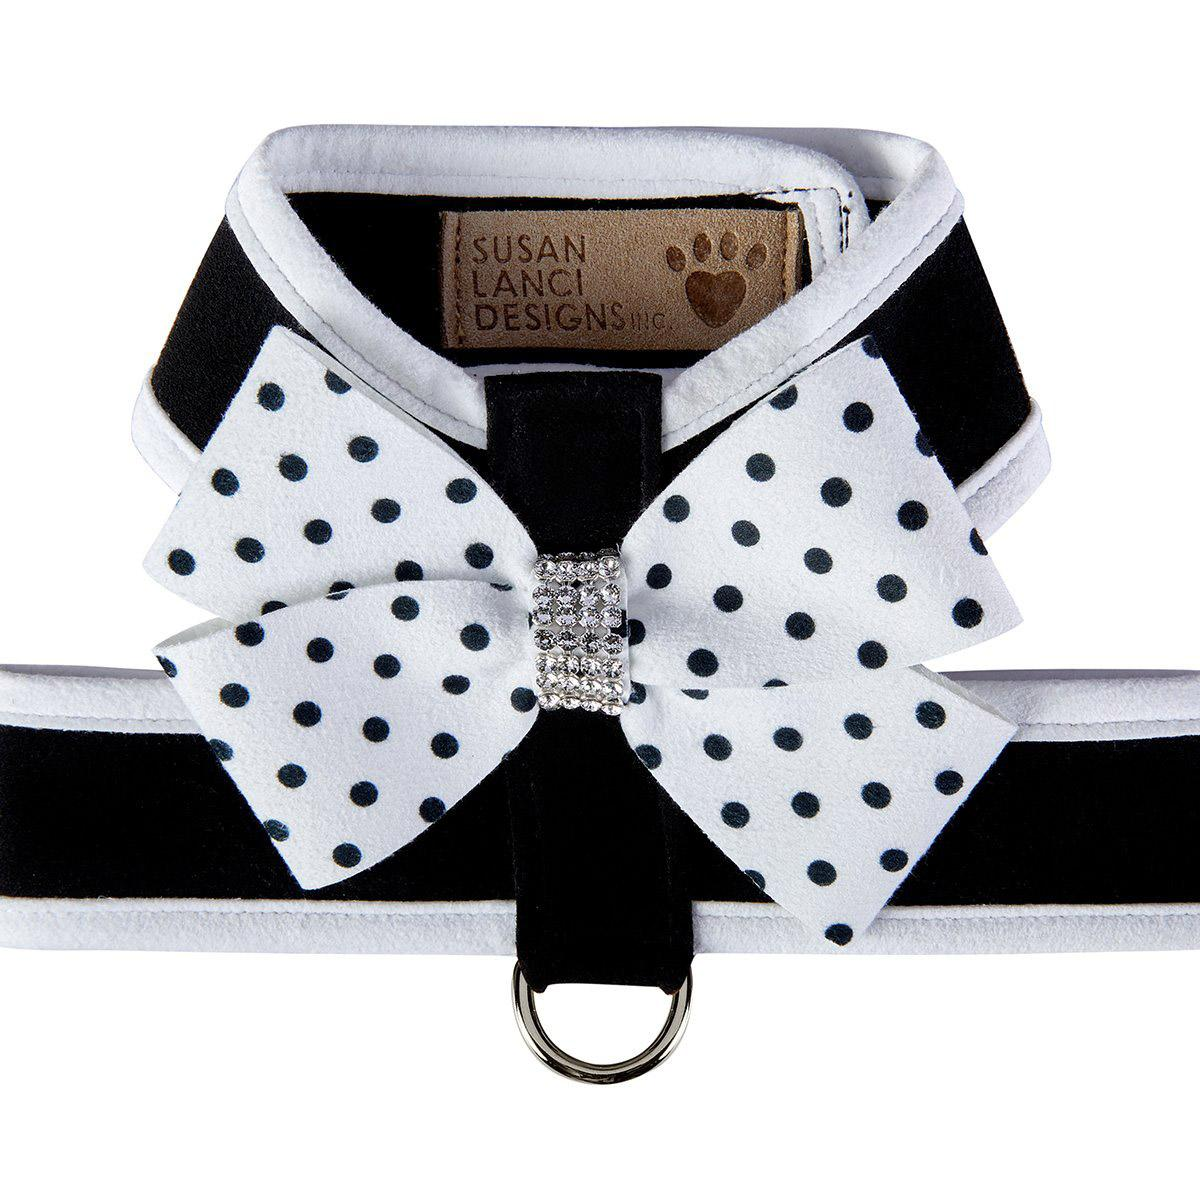 Polka Dot Nouveau Bow Tinkie Dog Harness with Trim by Susan Lanci - Black & White